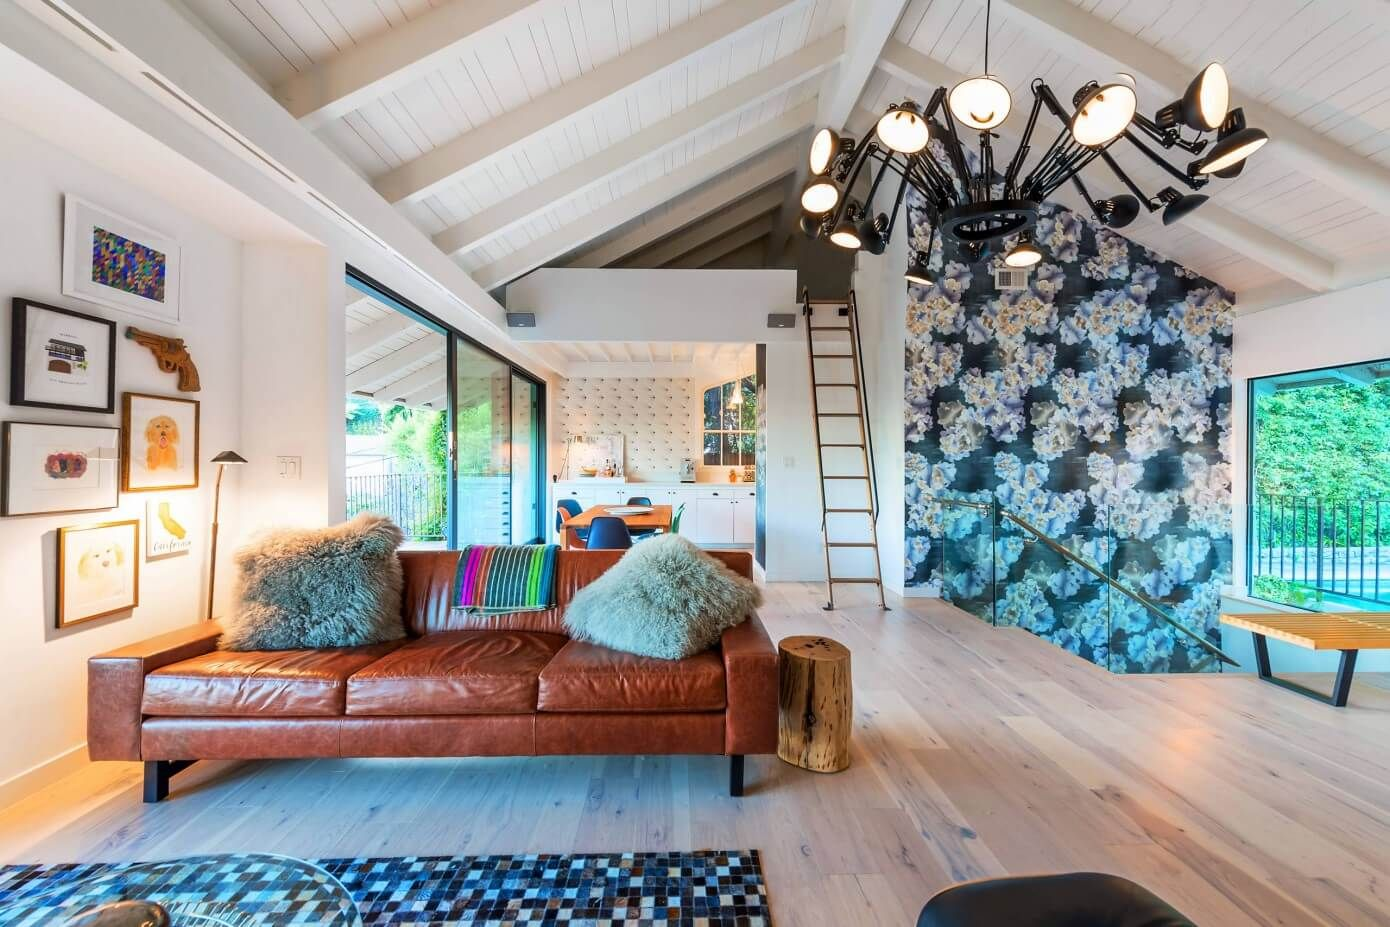 House in hollywood hills by jac interiors hollywood hills